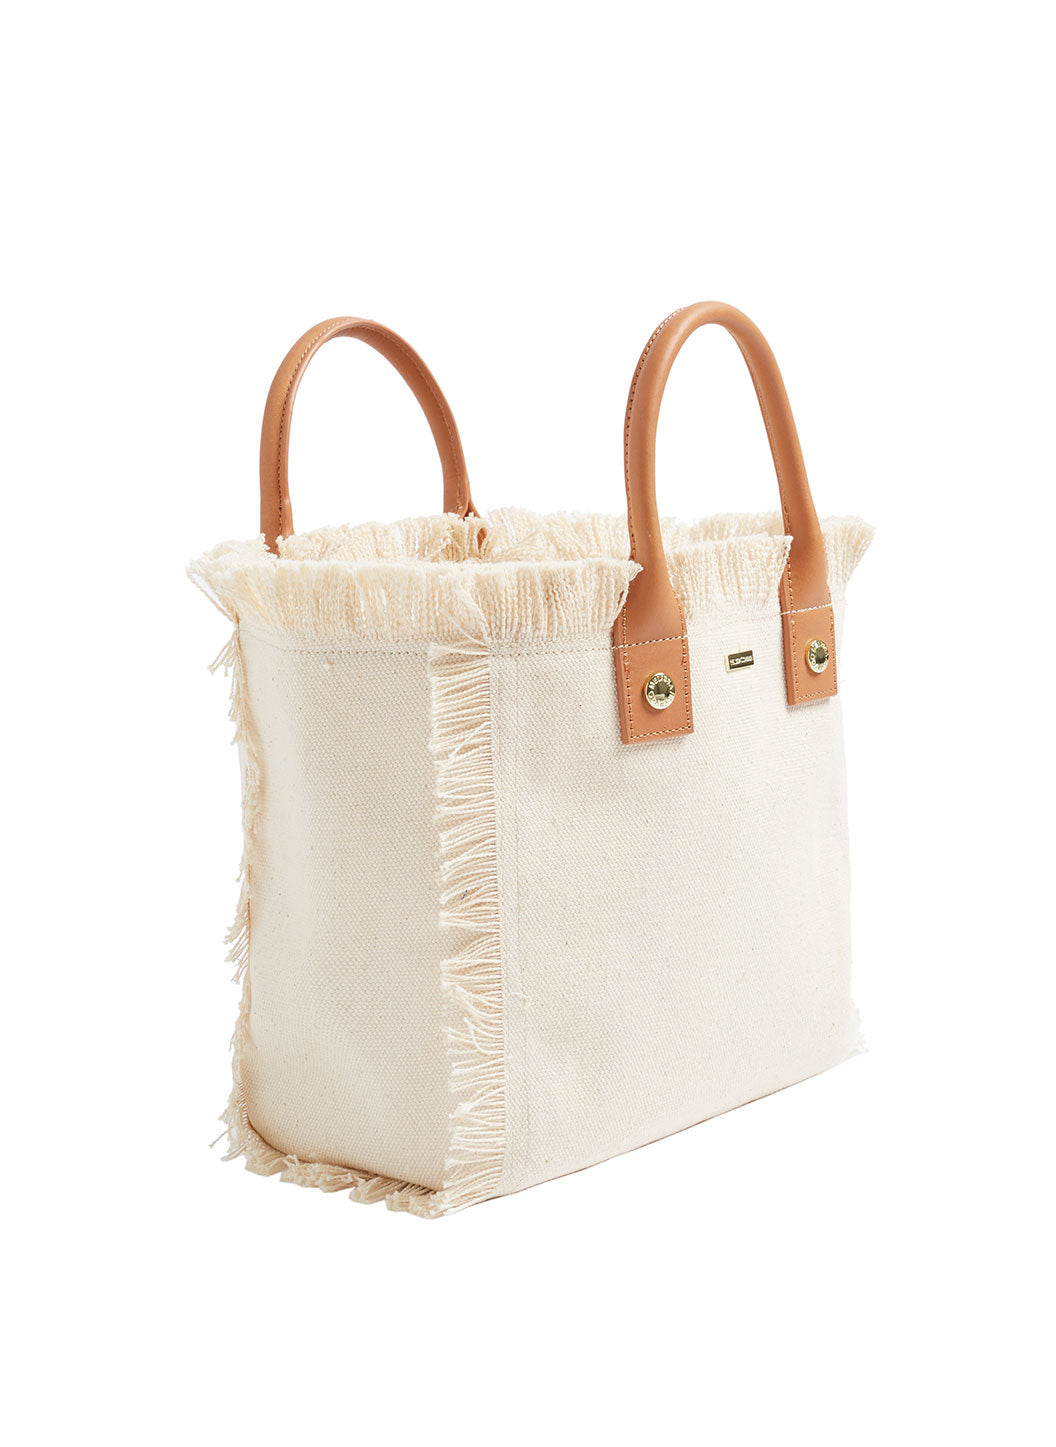 Porto Cervo Mini Beach Tote Beige - Melissa Odabash Accessories